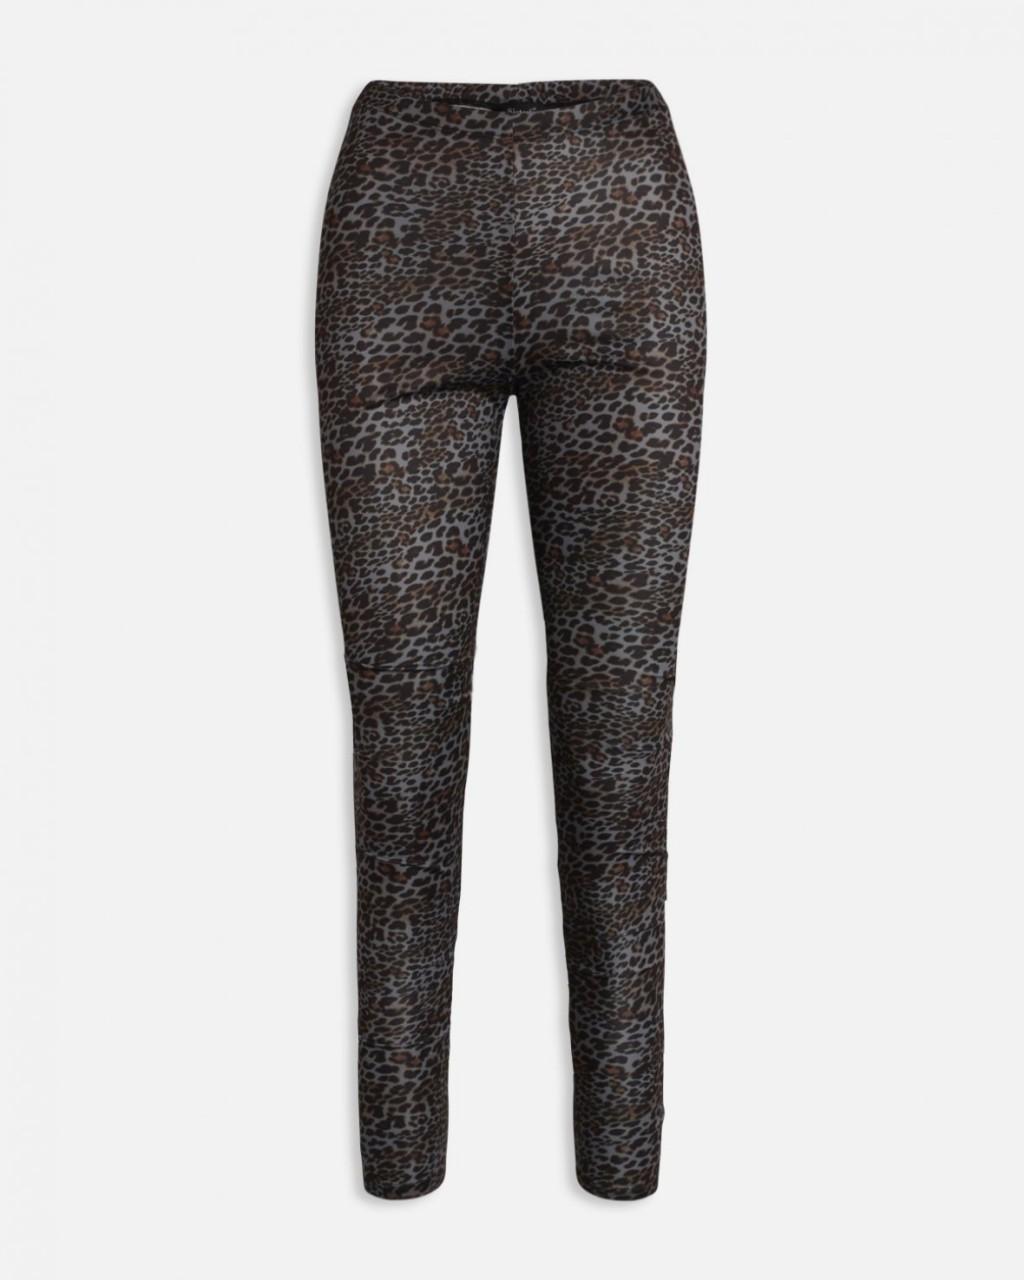 Hosen - Mala Leggings grey leo  - Onlineshop Olden Mea